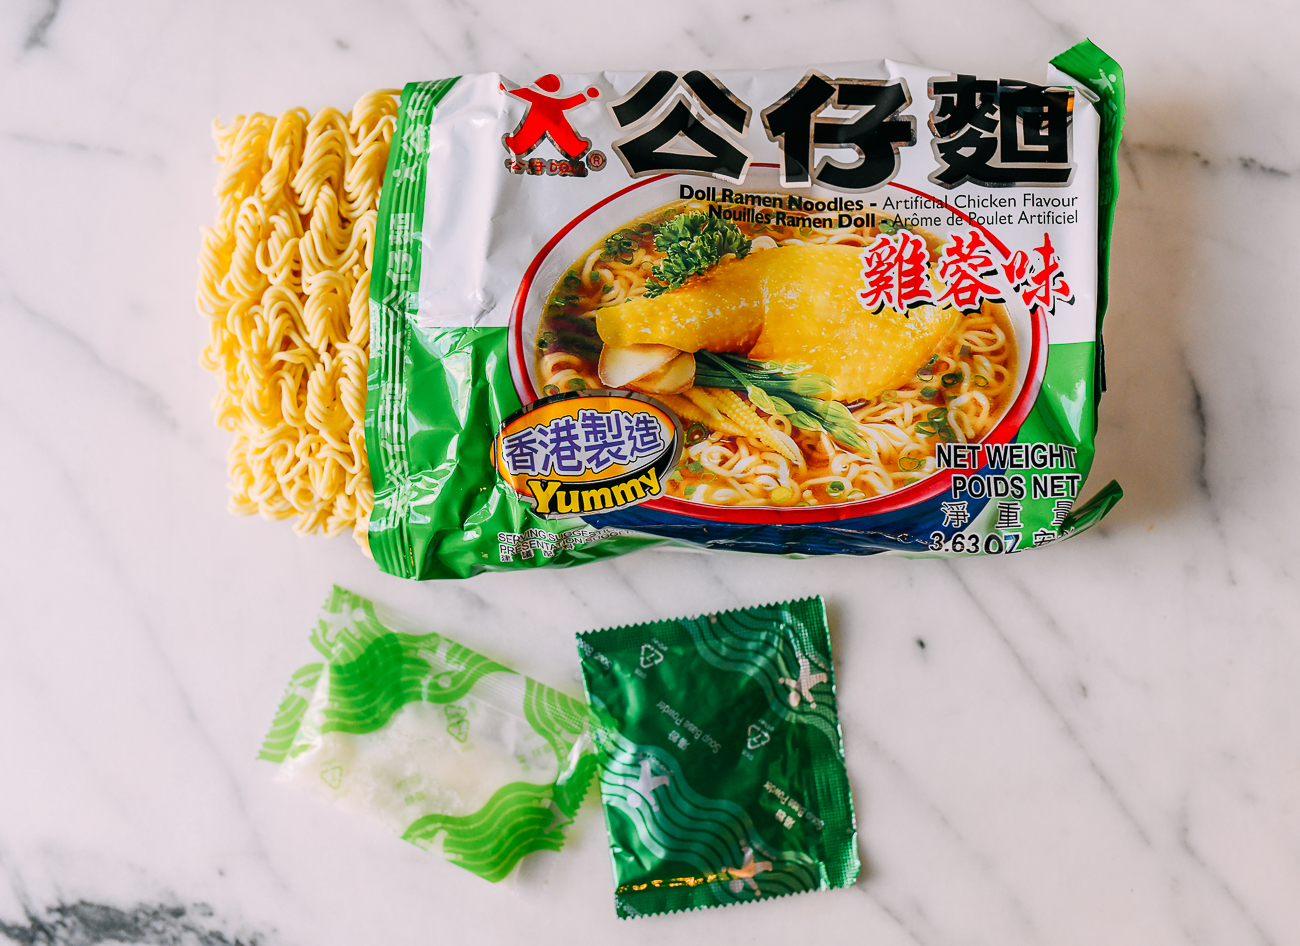 Gong Zai Mein Doll Brand Chicken Flavor Noodles Package